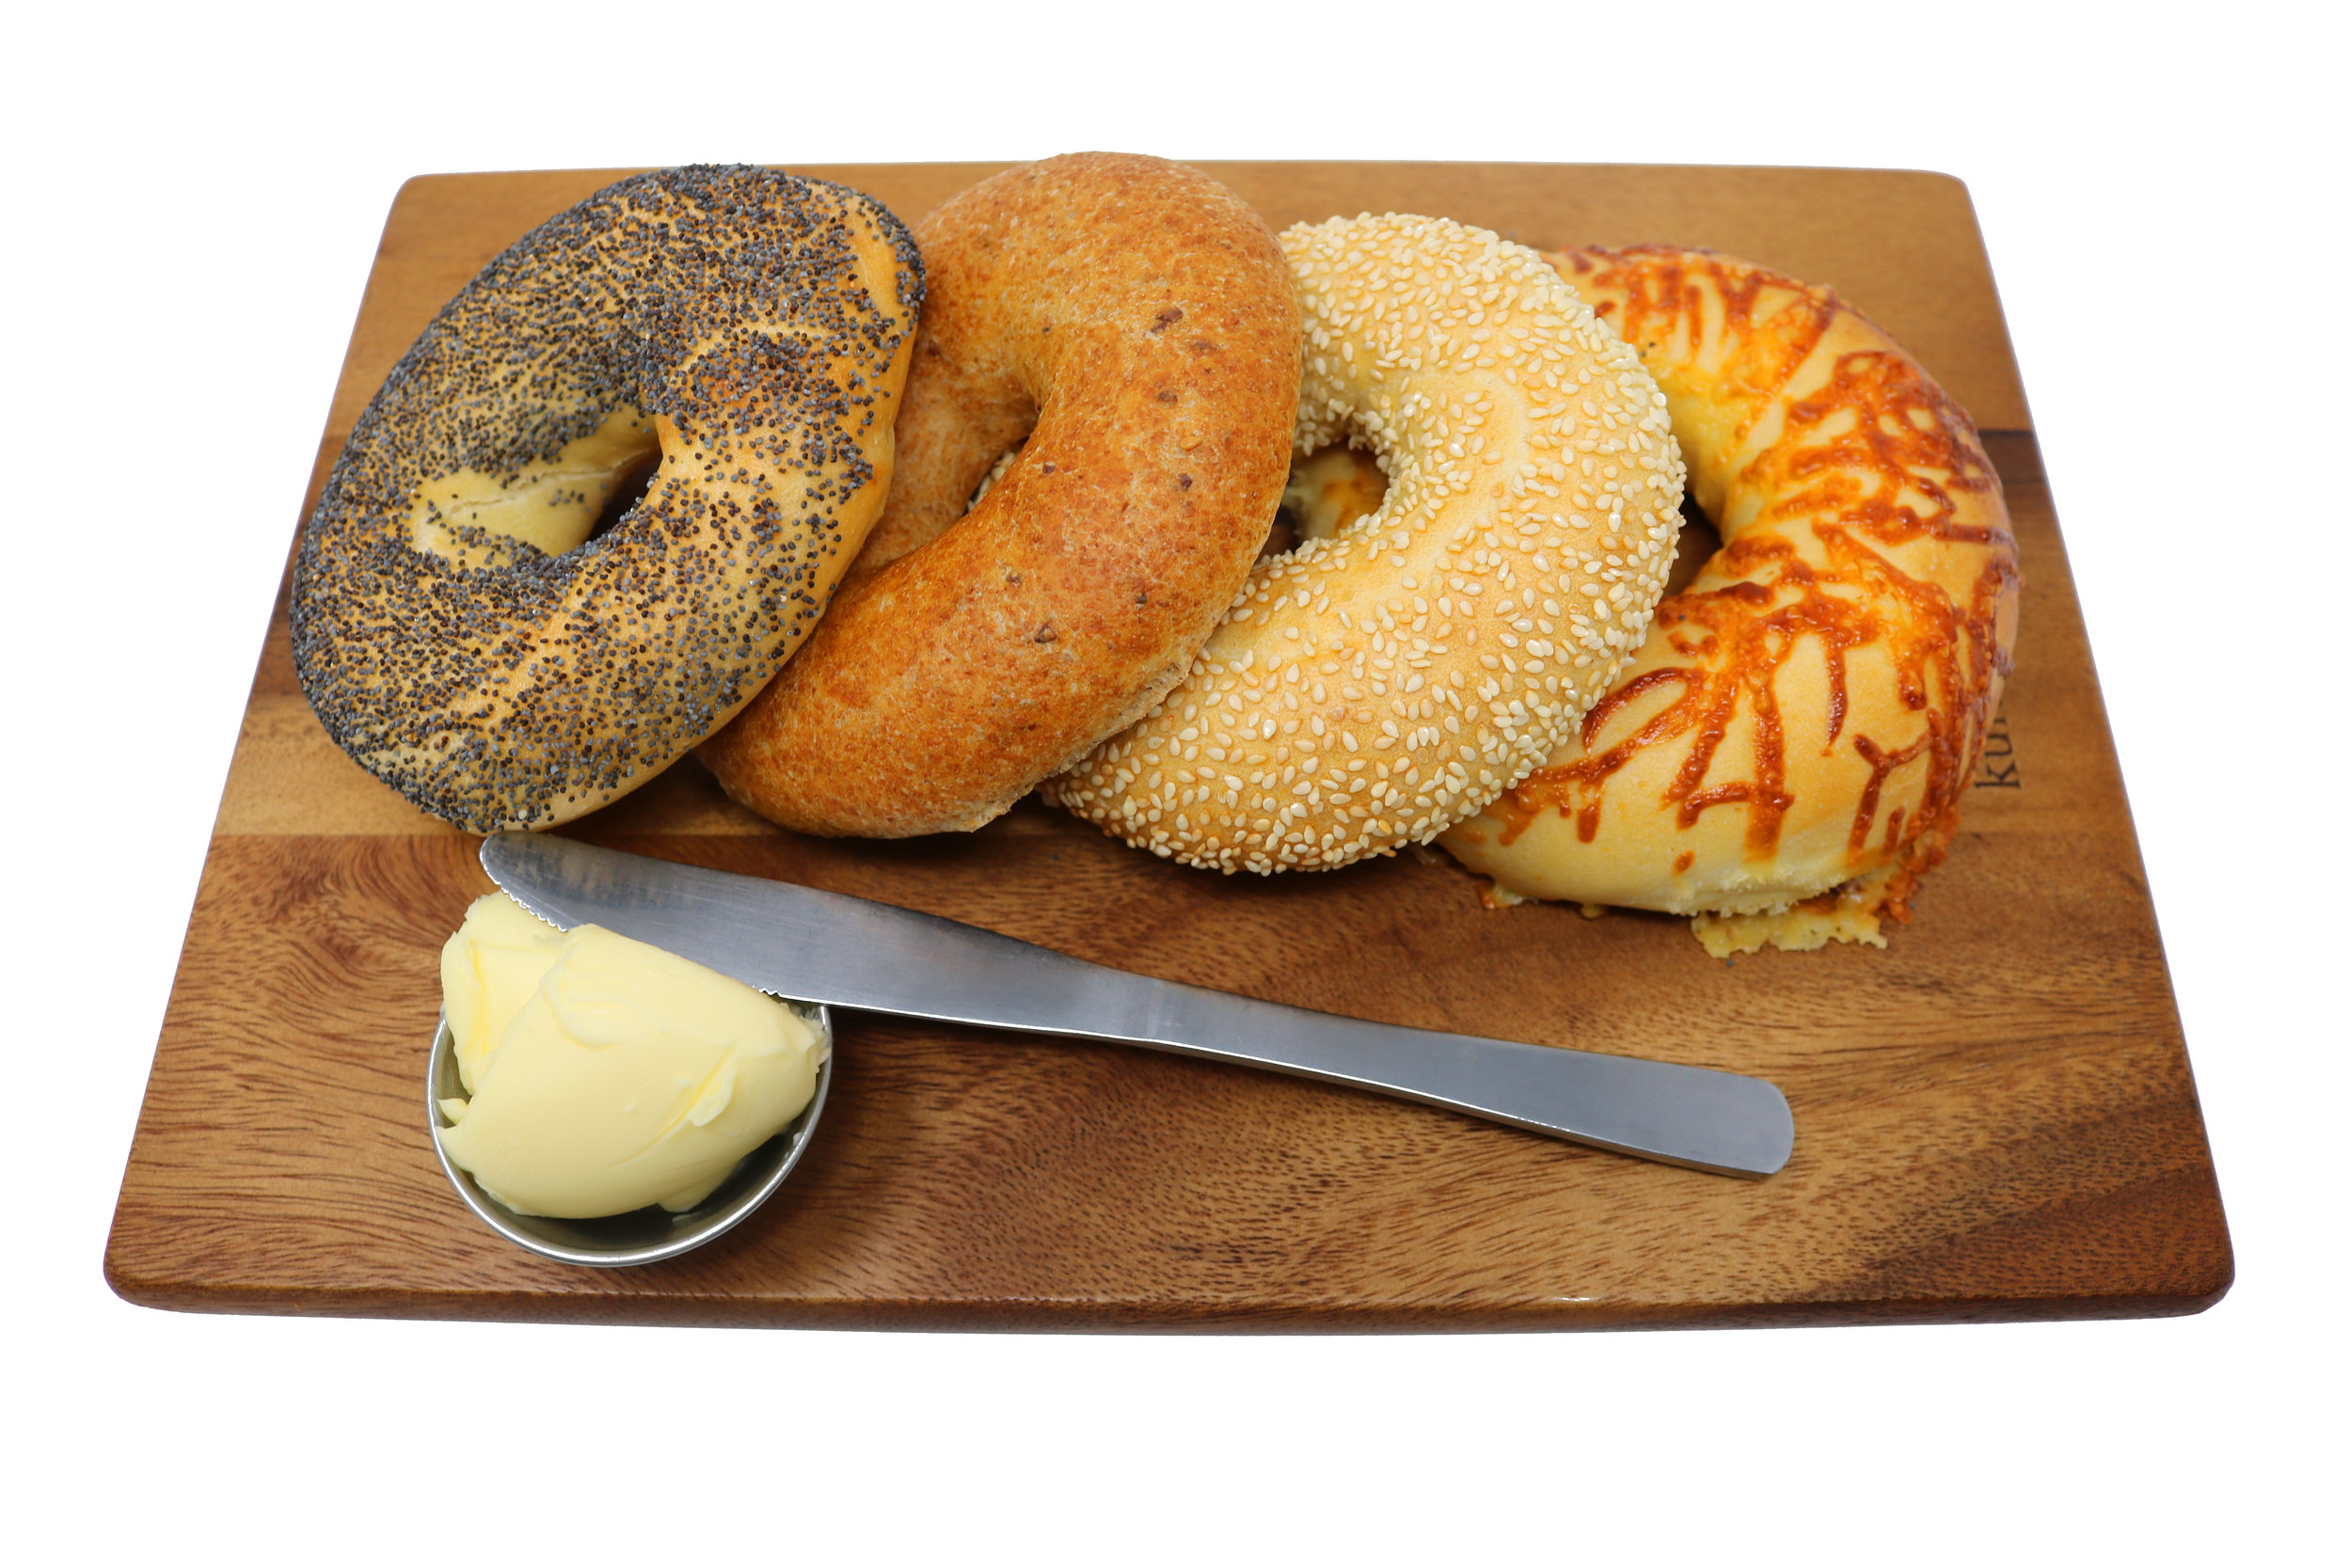 New York Style Bagels - Wheat or Spelt with Sesame or Poppy SeedCheese